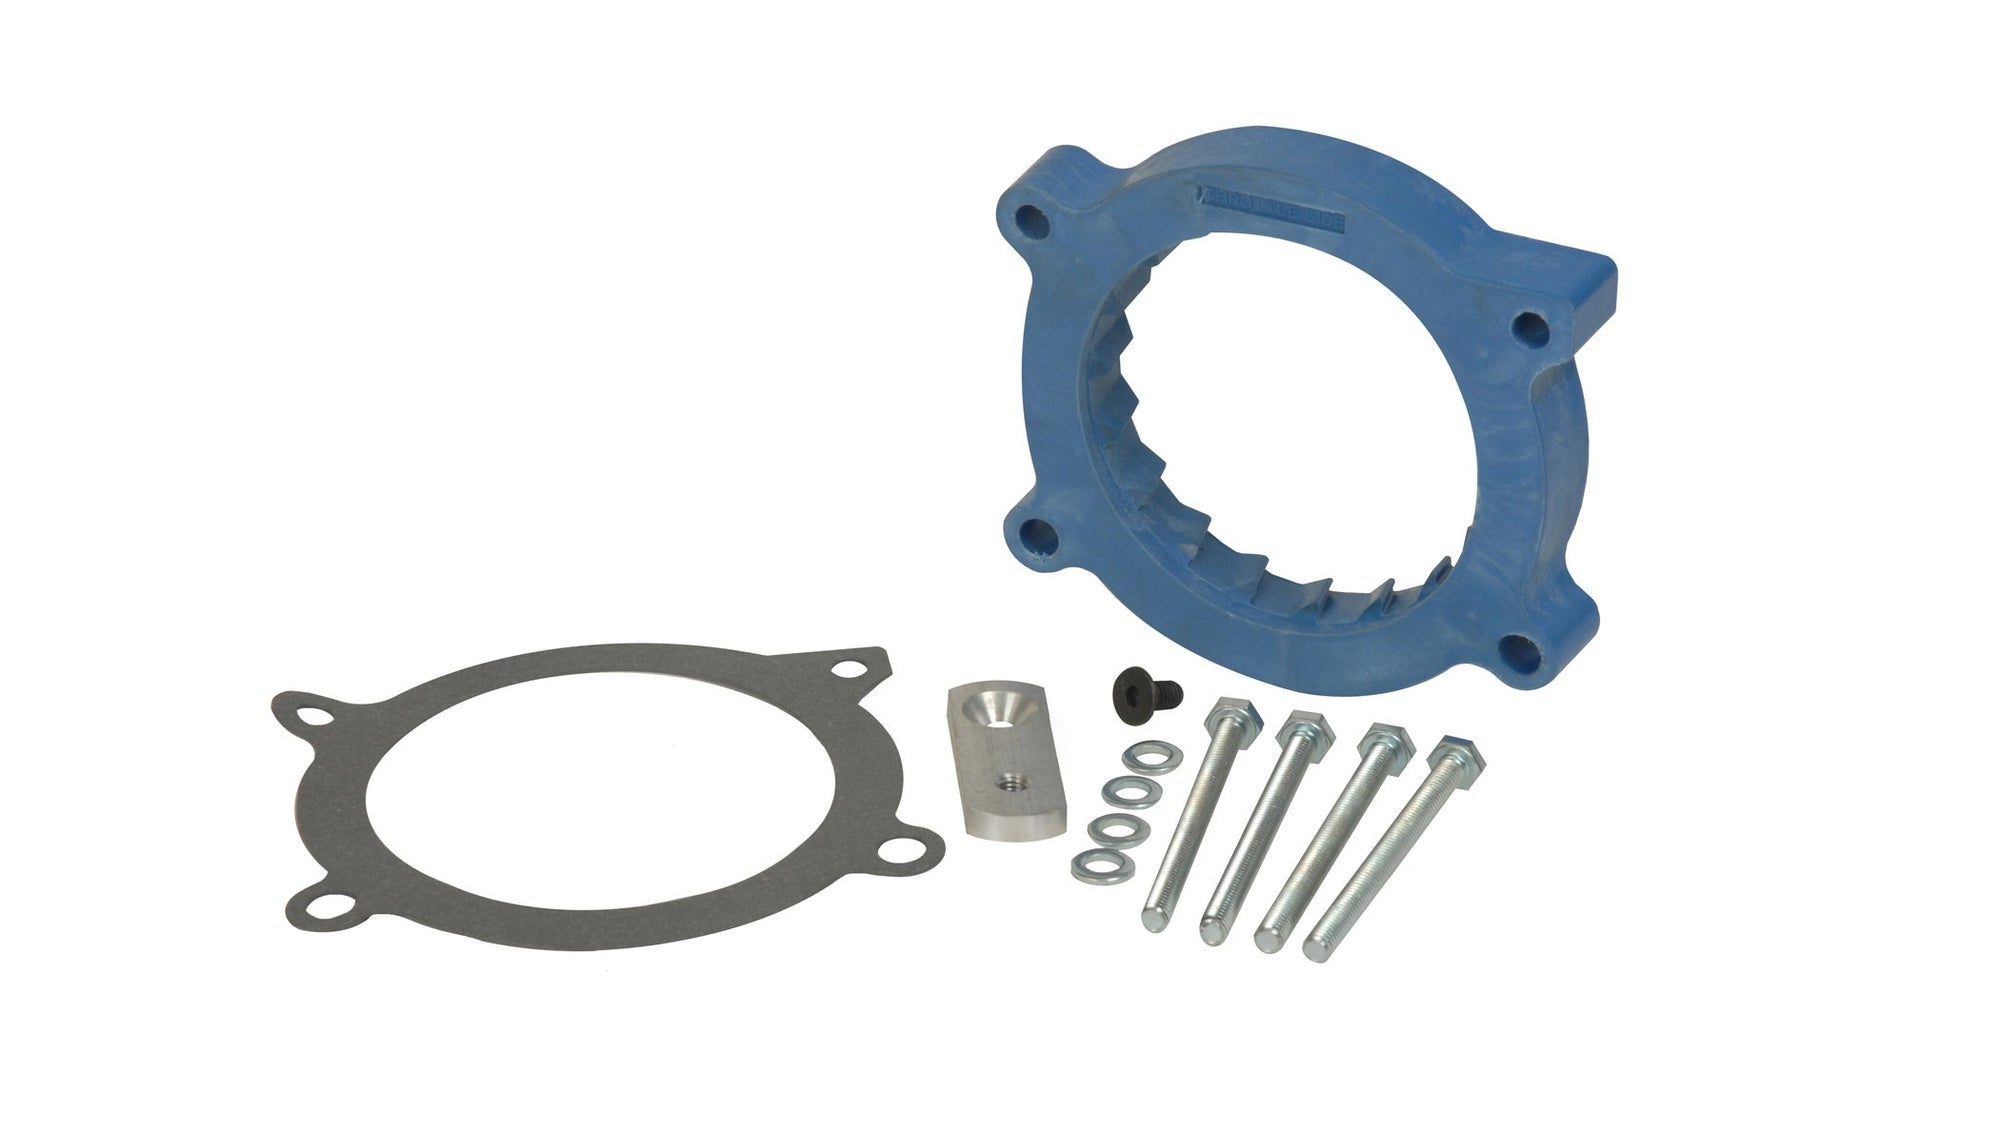 Volant Vortice Air Intake Throttle Body Spacer 1999-2004 Ford Mustang GT 4.6L V8